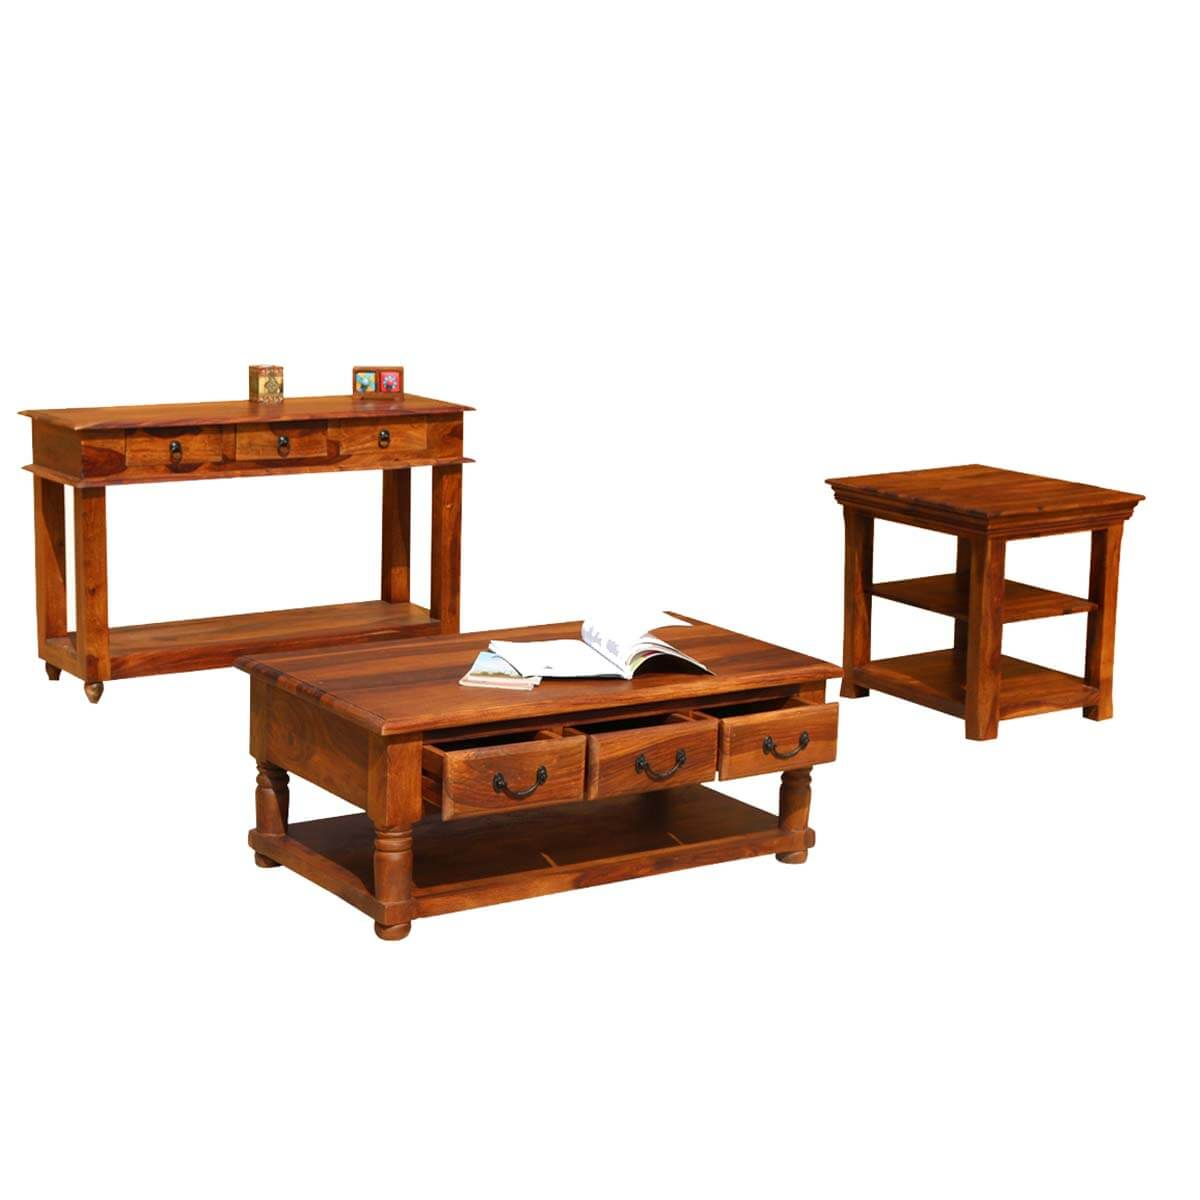 Solid Wood Coffee And End Tables For Sale: Early American Solid Wood Console Coffee & Accent Table